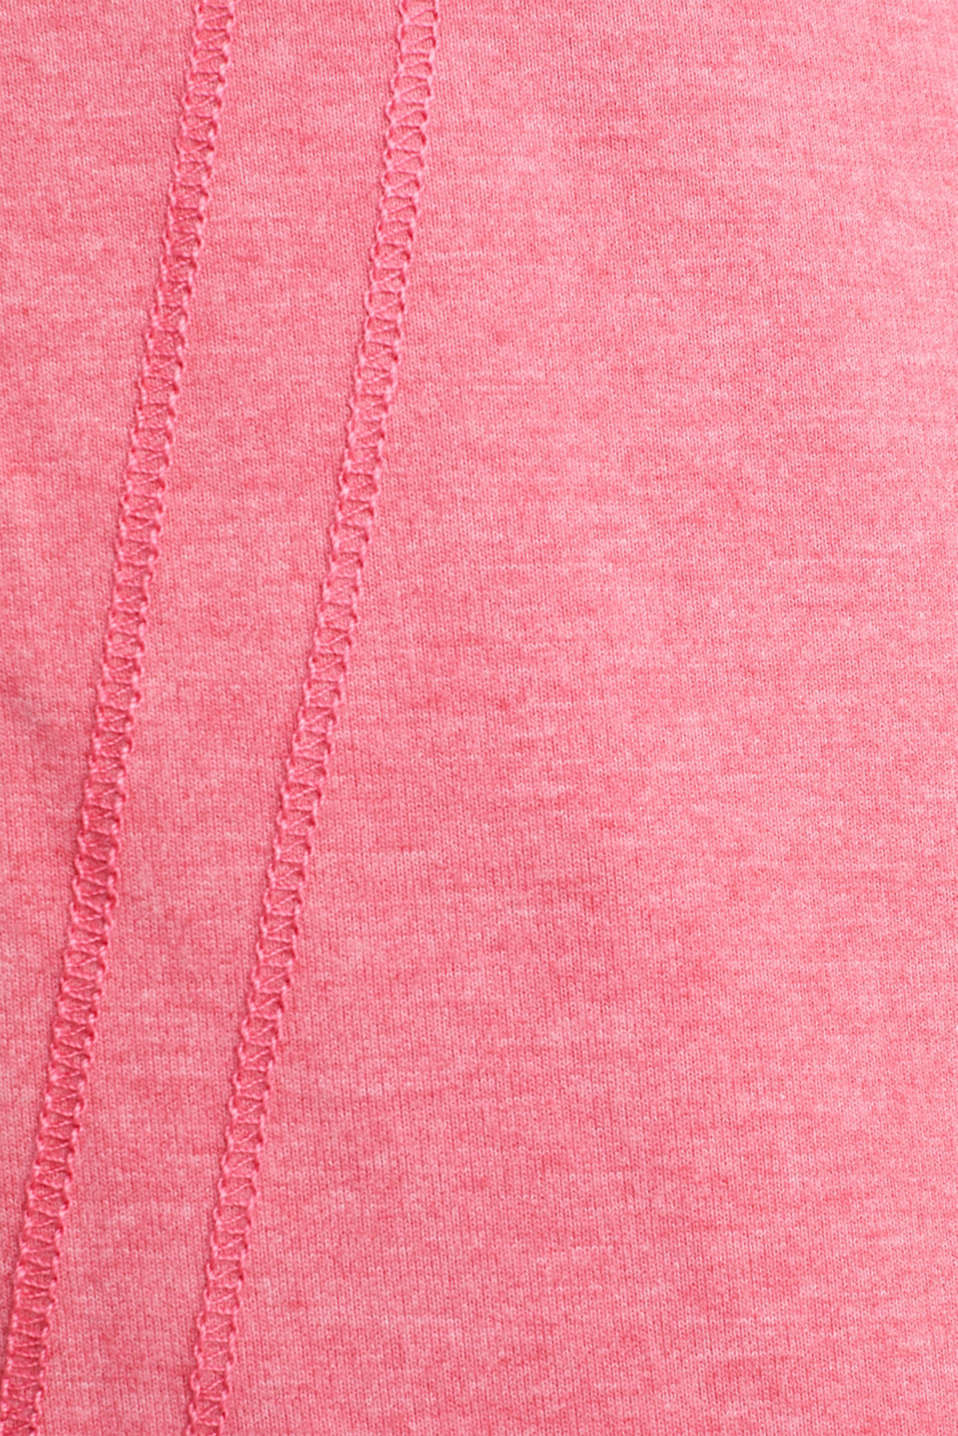 Sweatshirt cardigan with a drawstring collar, CORAL 2, detail image number 4